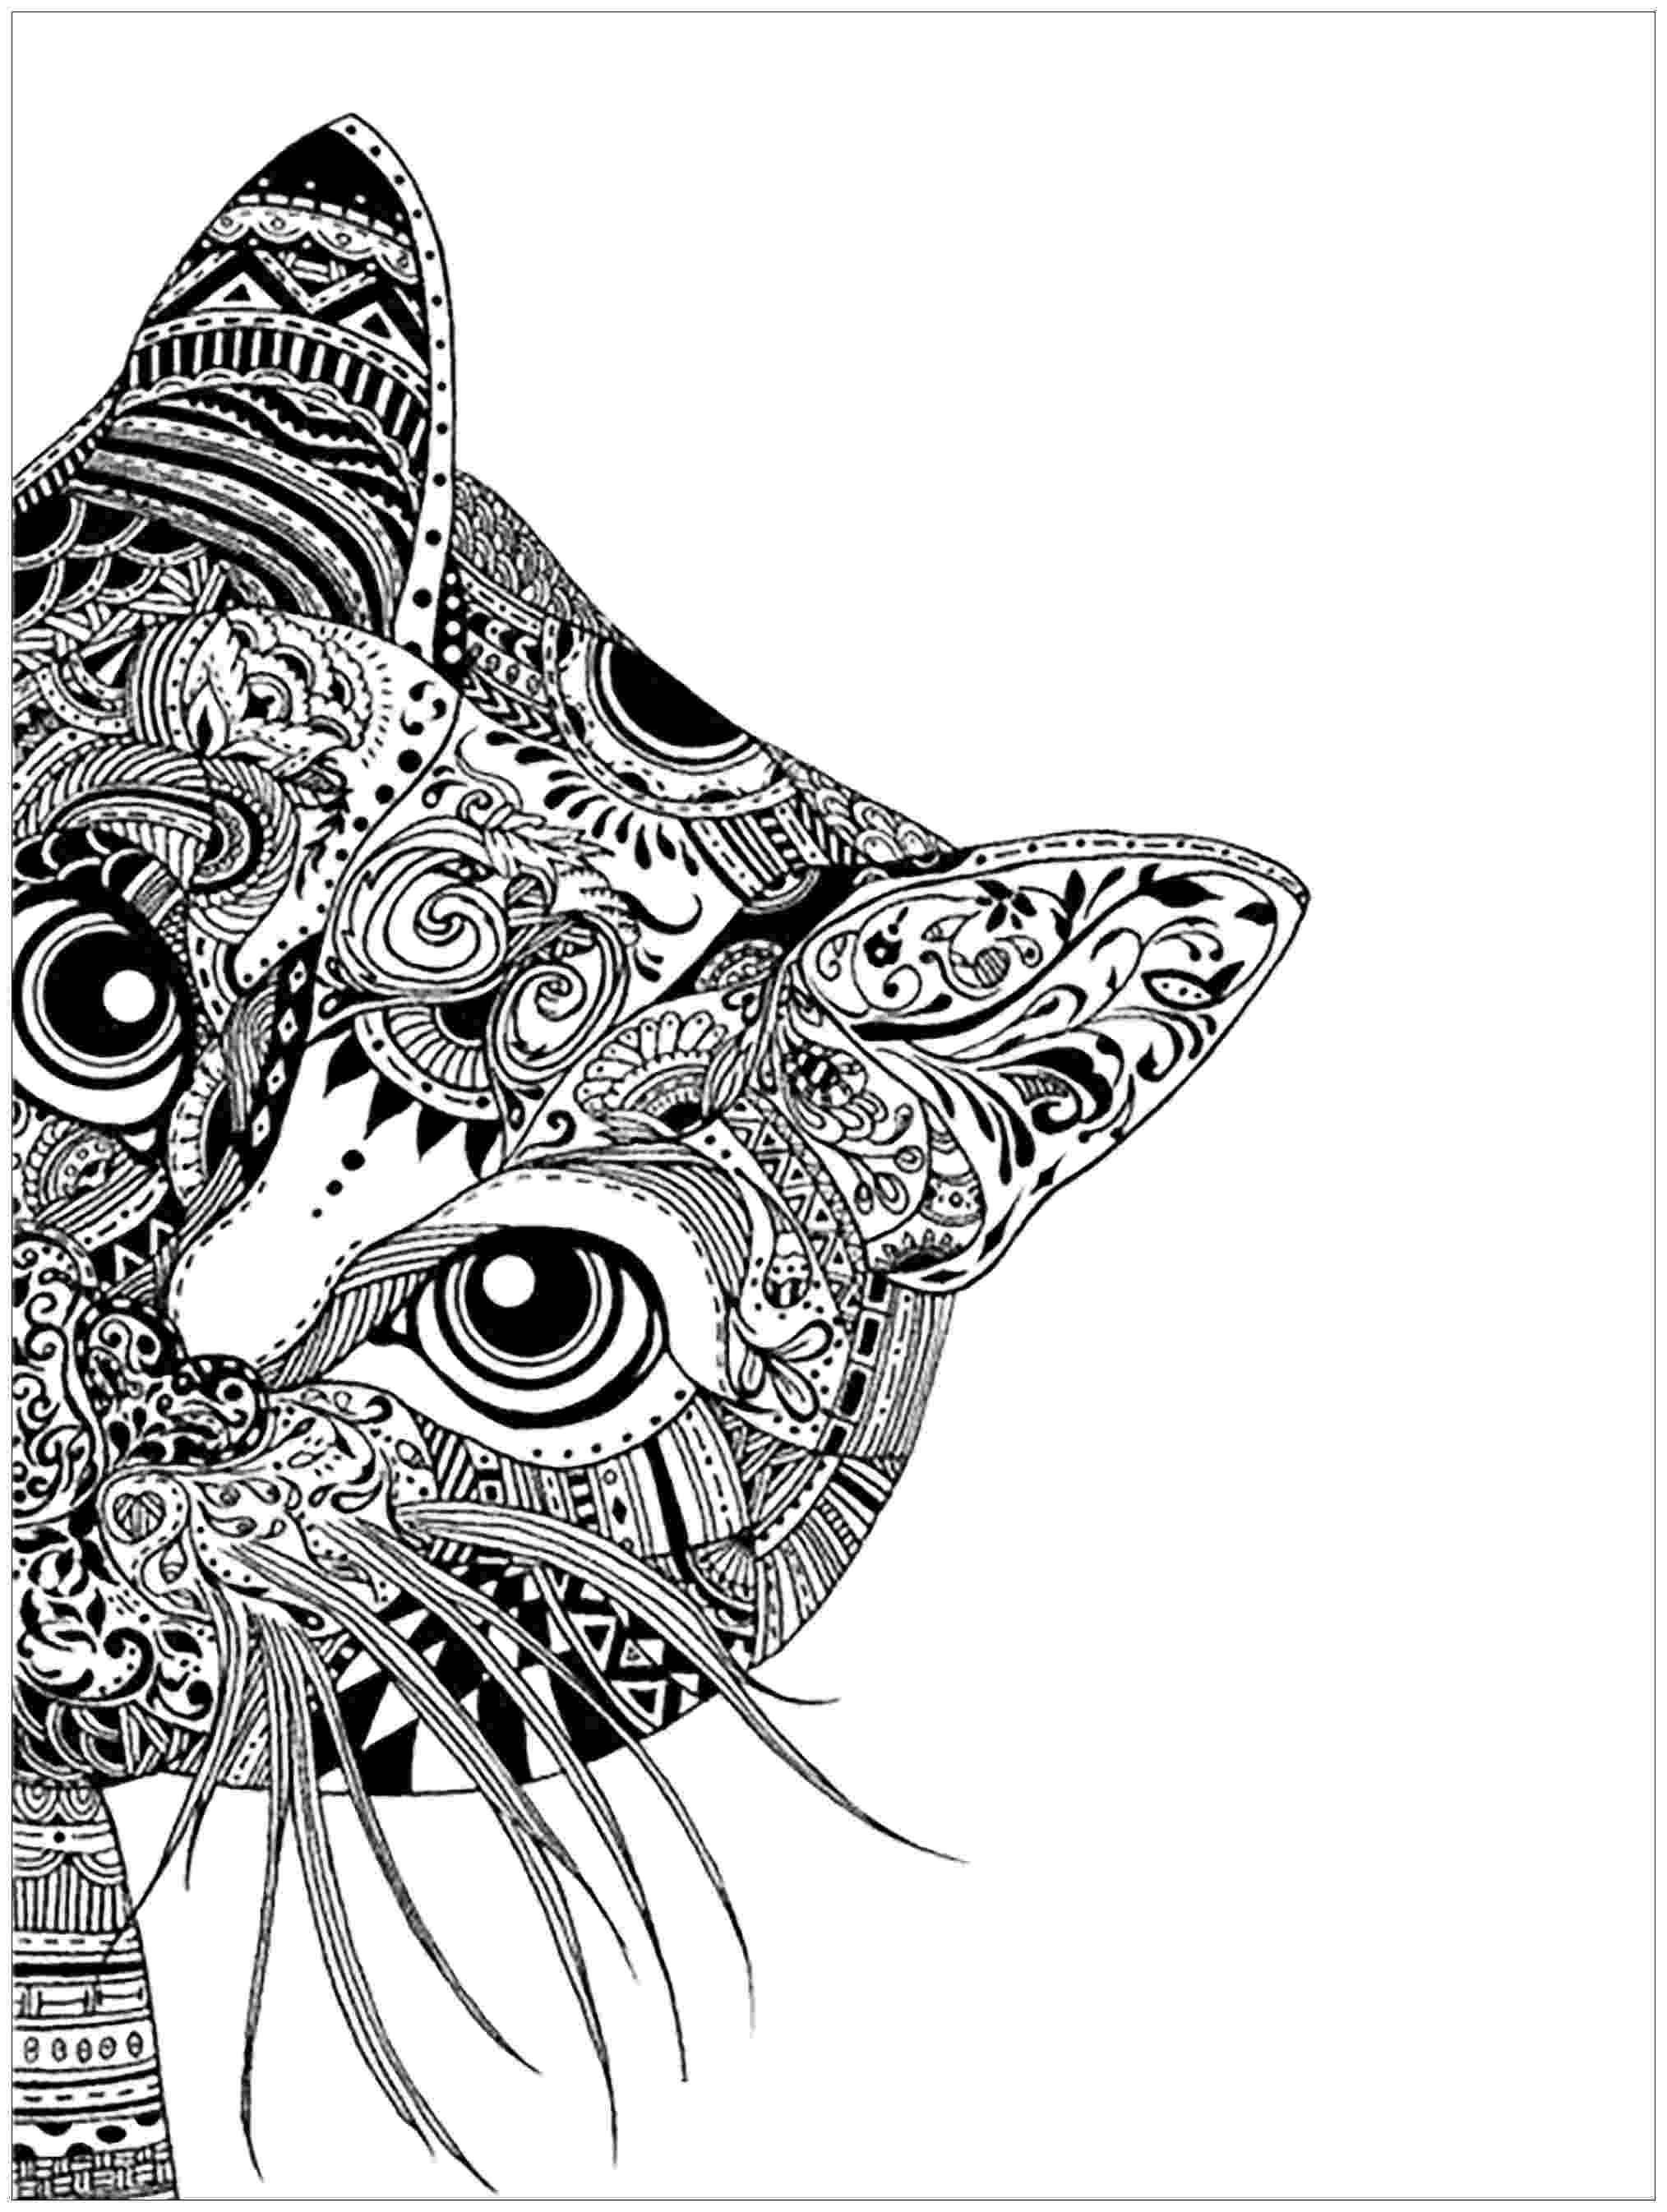 free online coloring pages for adults cats cat coloring pages for adults free pages online adults cats for coloring